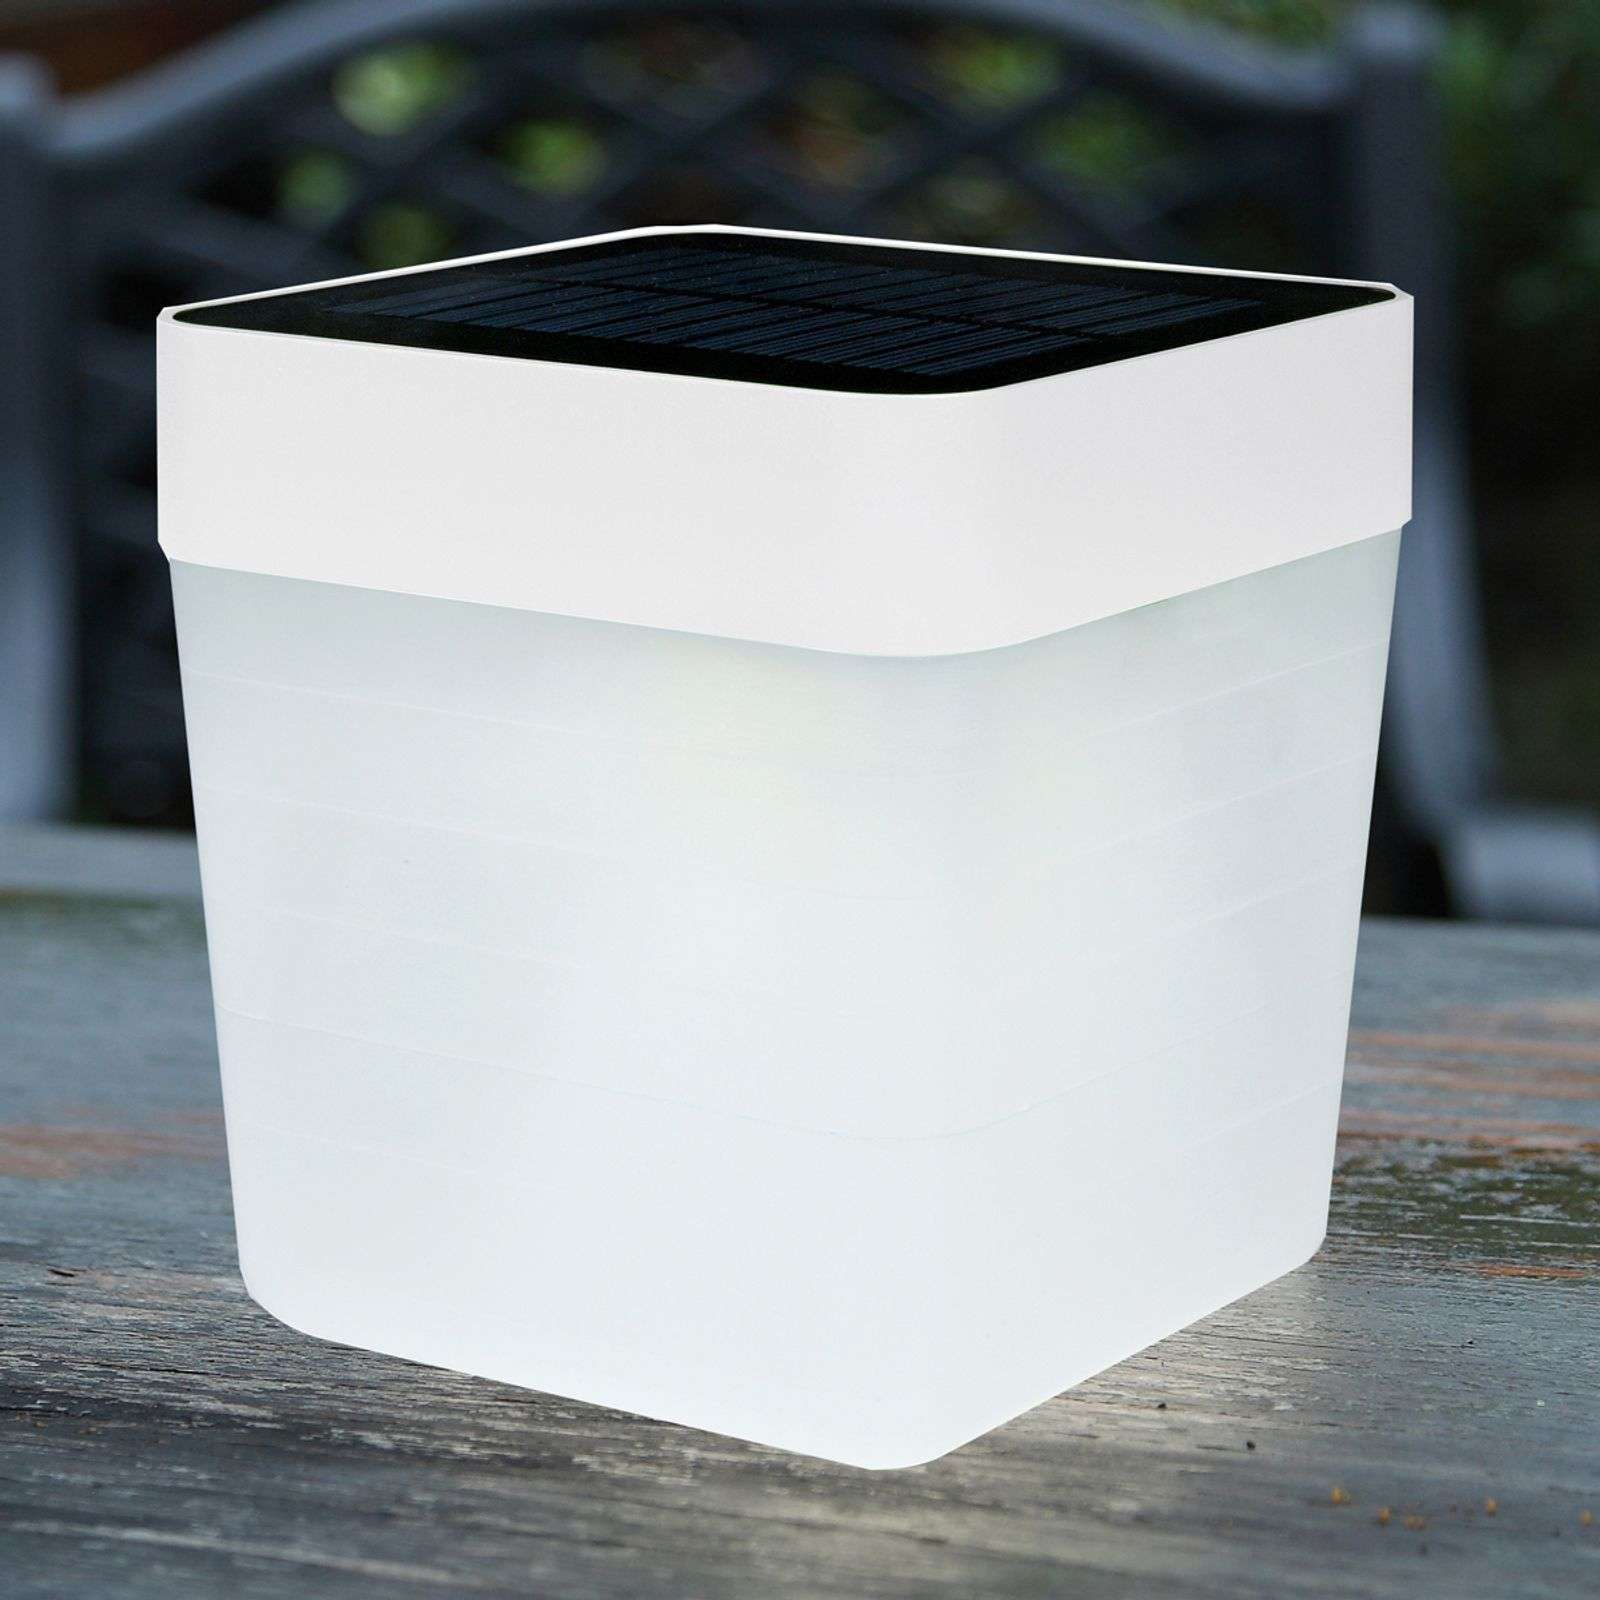 Lampe à poser LED solaire blanche Table Cube